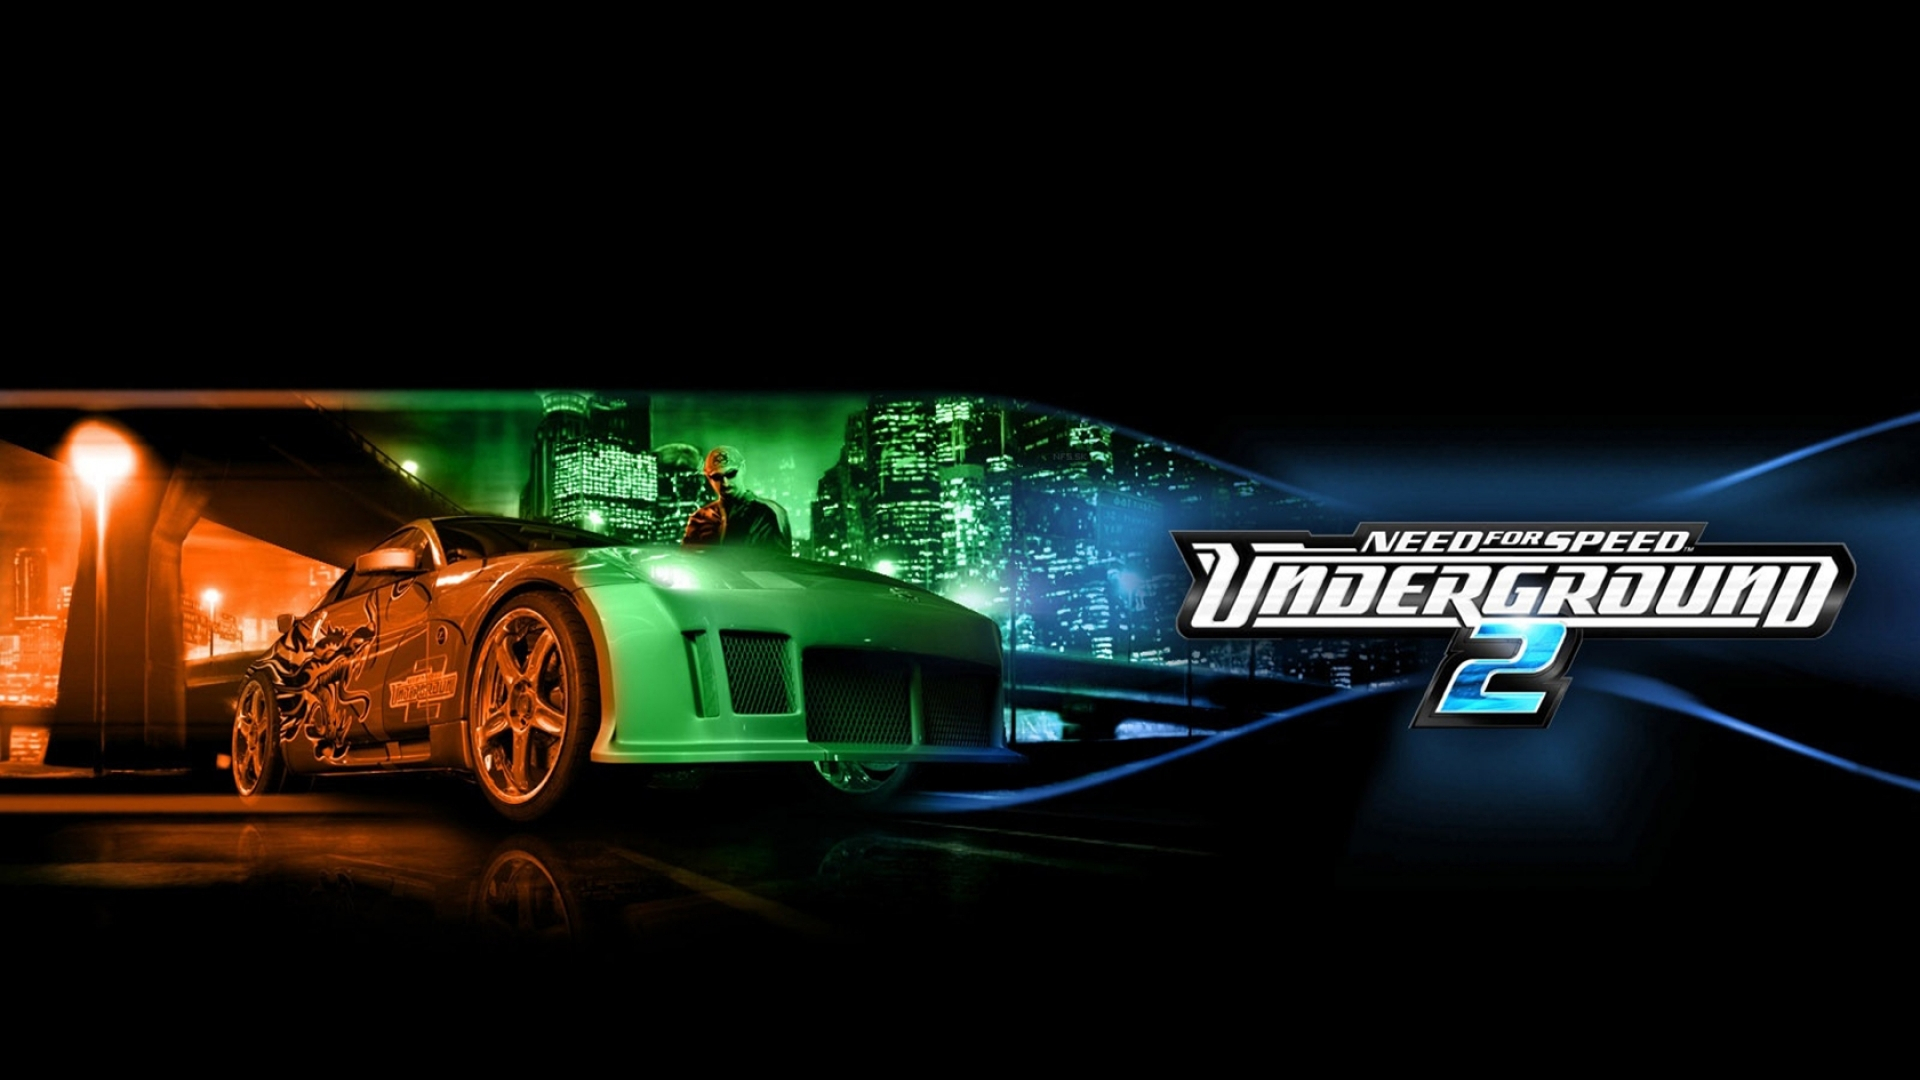 Free Download Nissan 350z Need For Speed Underground 2 Games